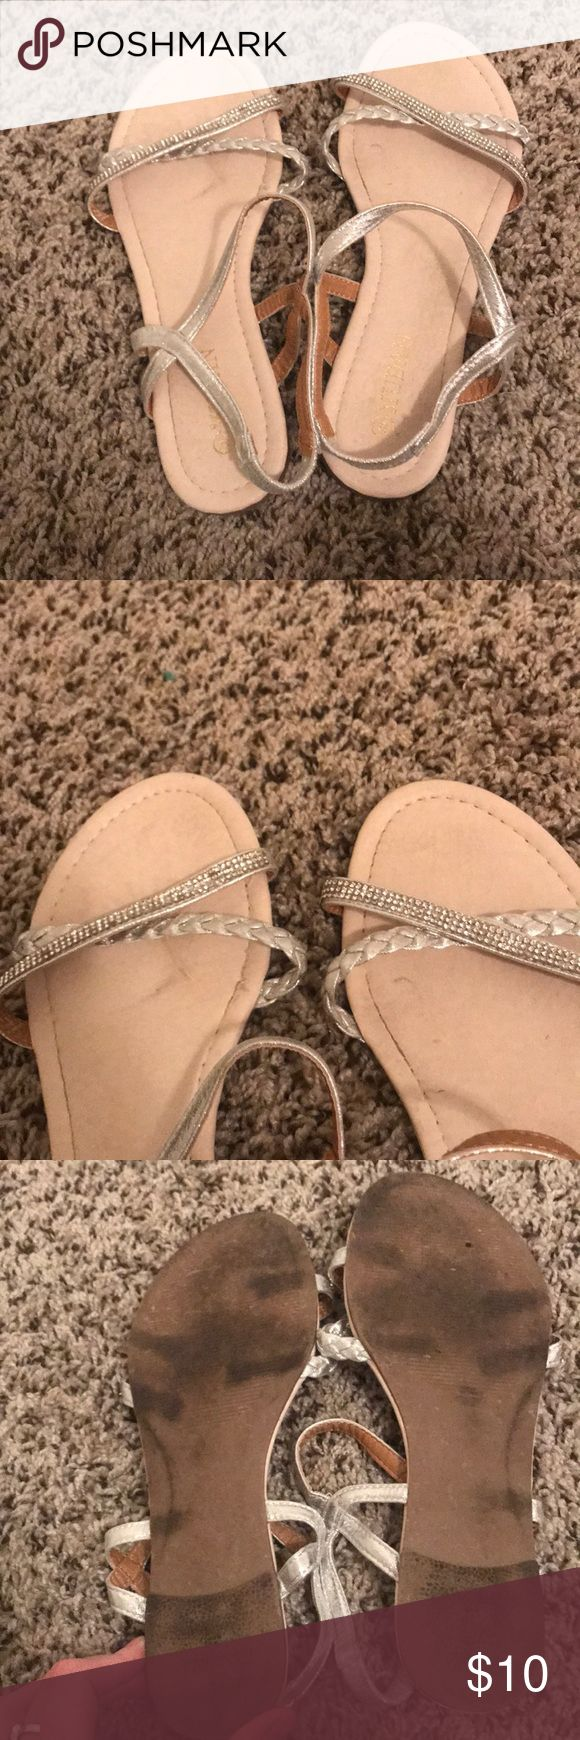 Sparkly sandals size 9 Super cute sparkly sandals in size 9. I️ wore these once for my friends wedding, they are still in great shape! mudan Shoes Sandals